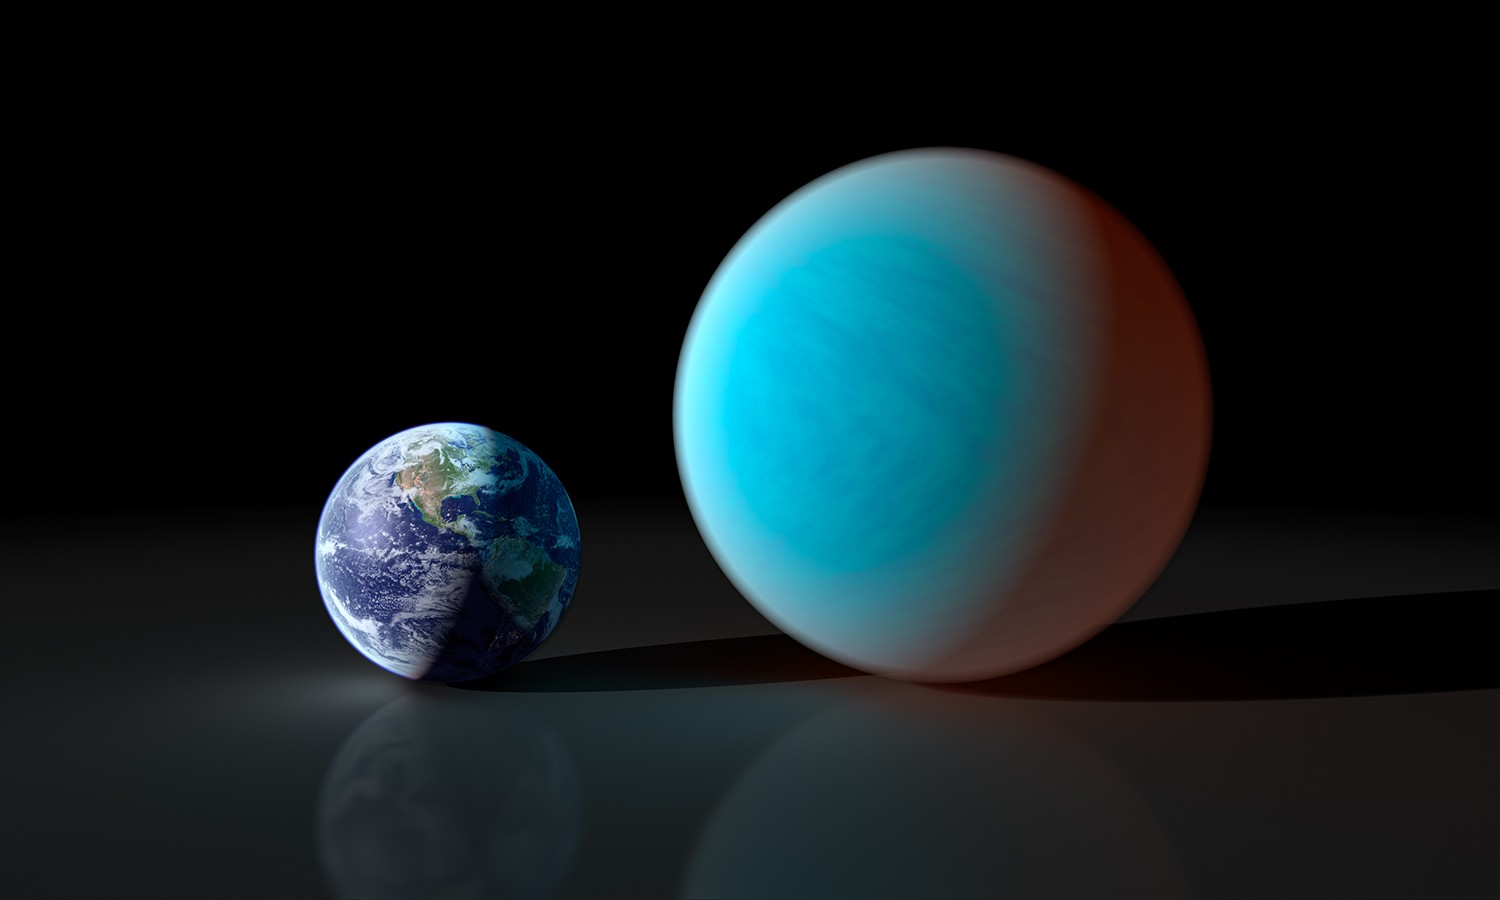 An artist's concept showing how exoplanet 55 Cancri e compares with Earth. 55 Cancri e has a mass 7.8 times and a radius just over twice that of our own planet, making it a 'super Earth'. Credit: NASA/JPL-Caltech/R. Hurt (SSC)